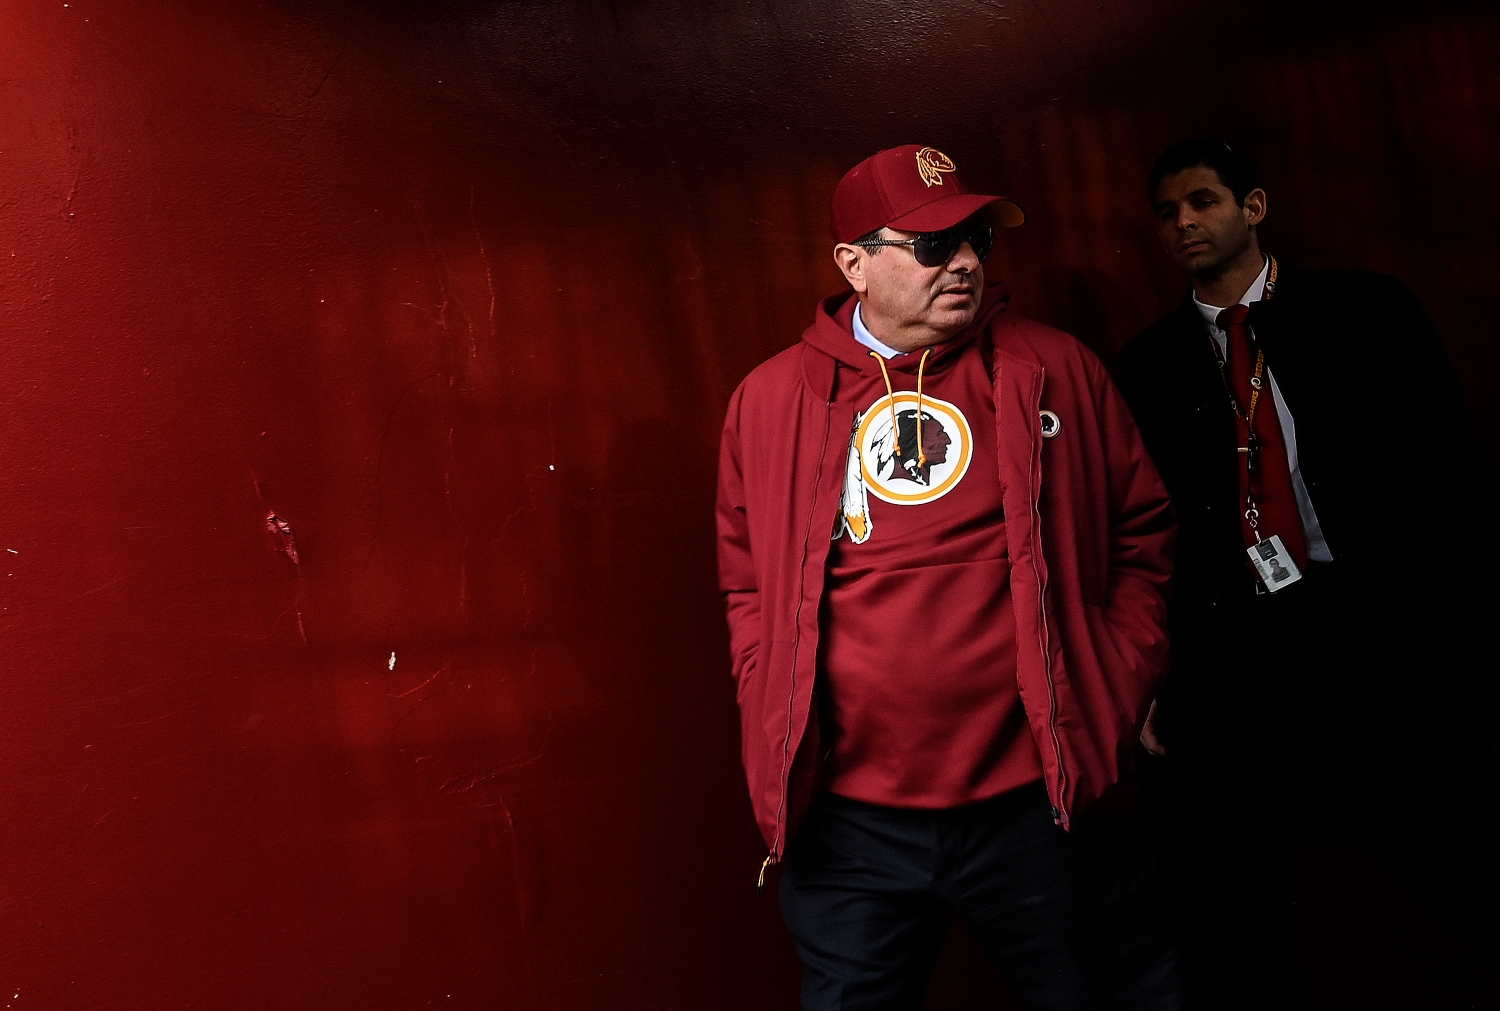 Washington Football Team owner Dan Snyder heads out to the field before a game.